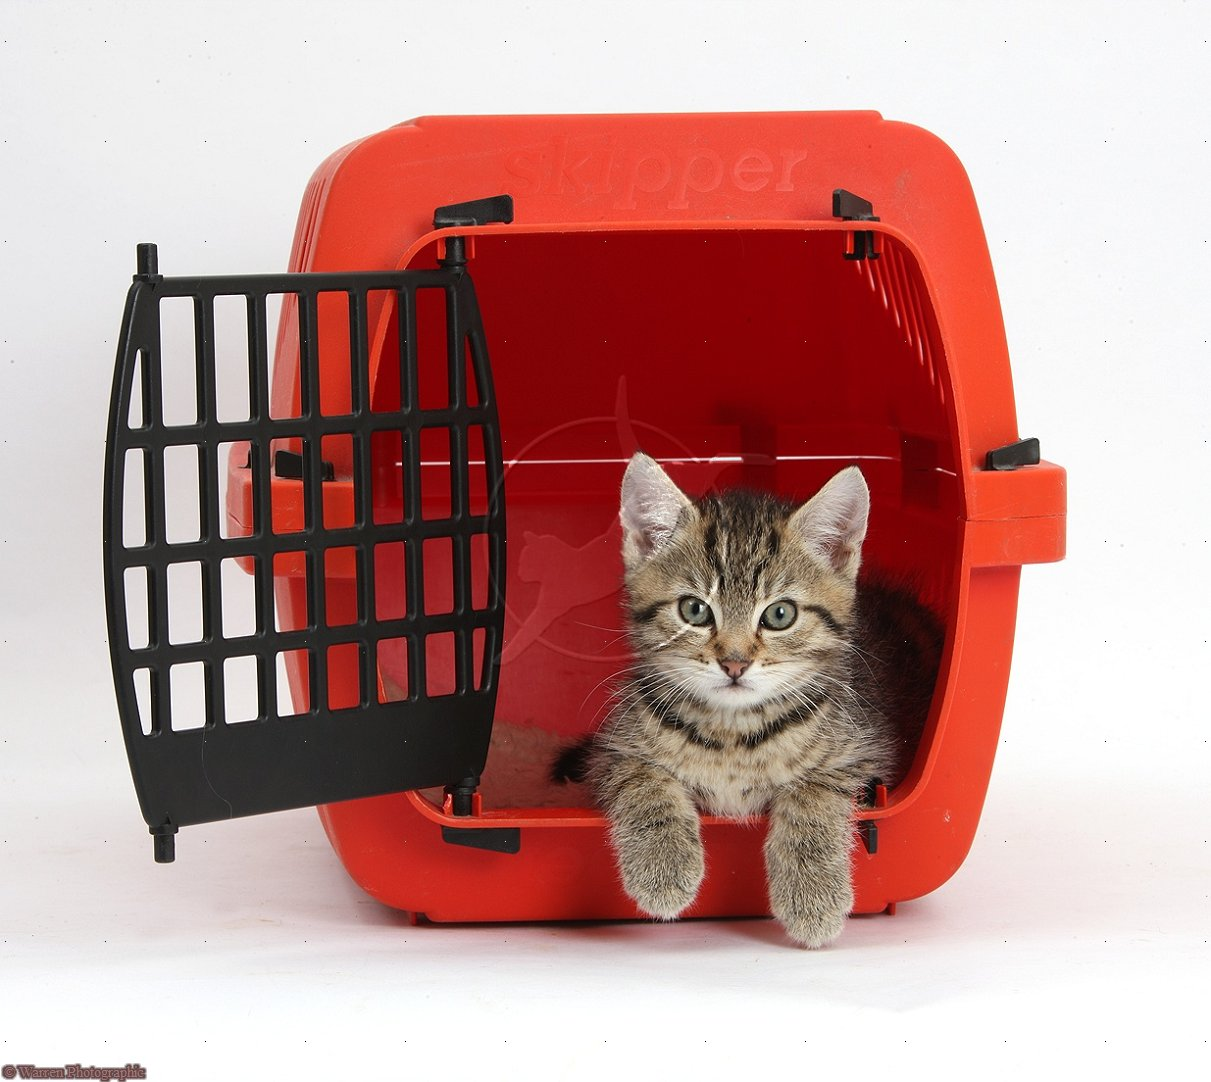 Getting a Cat Into a Cat Carrier